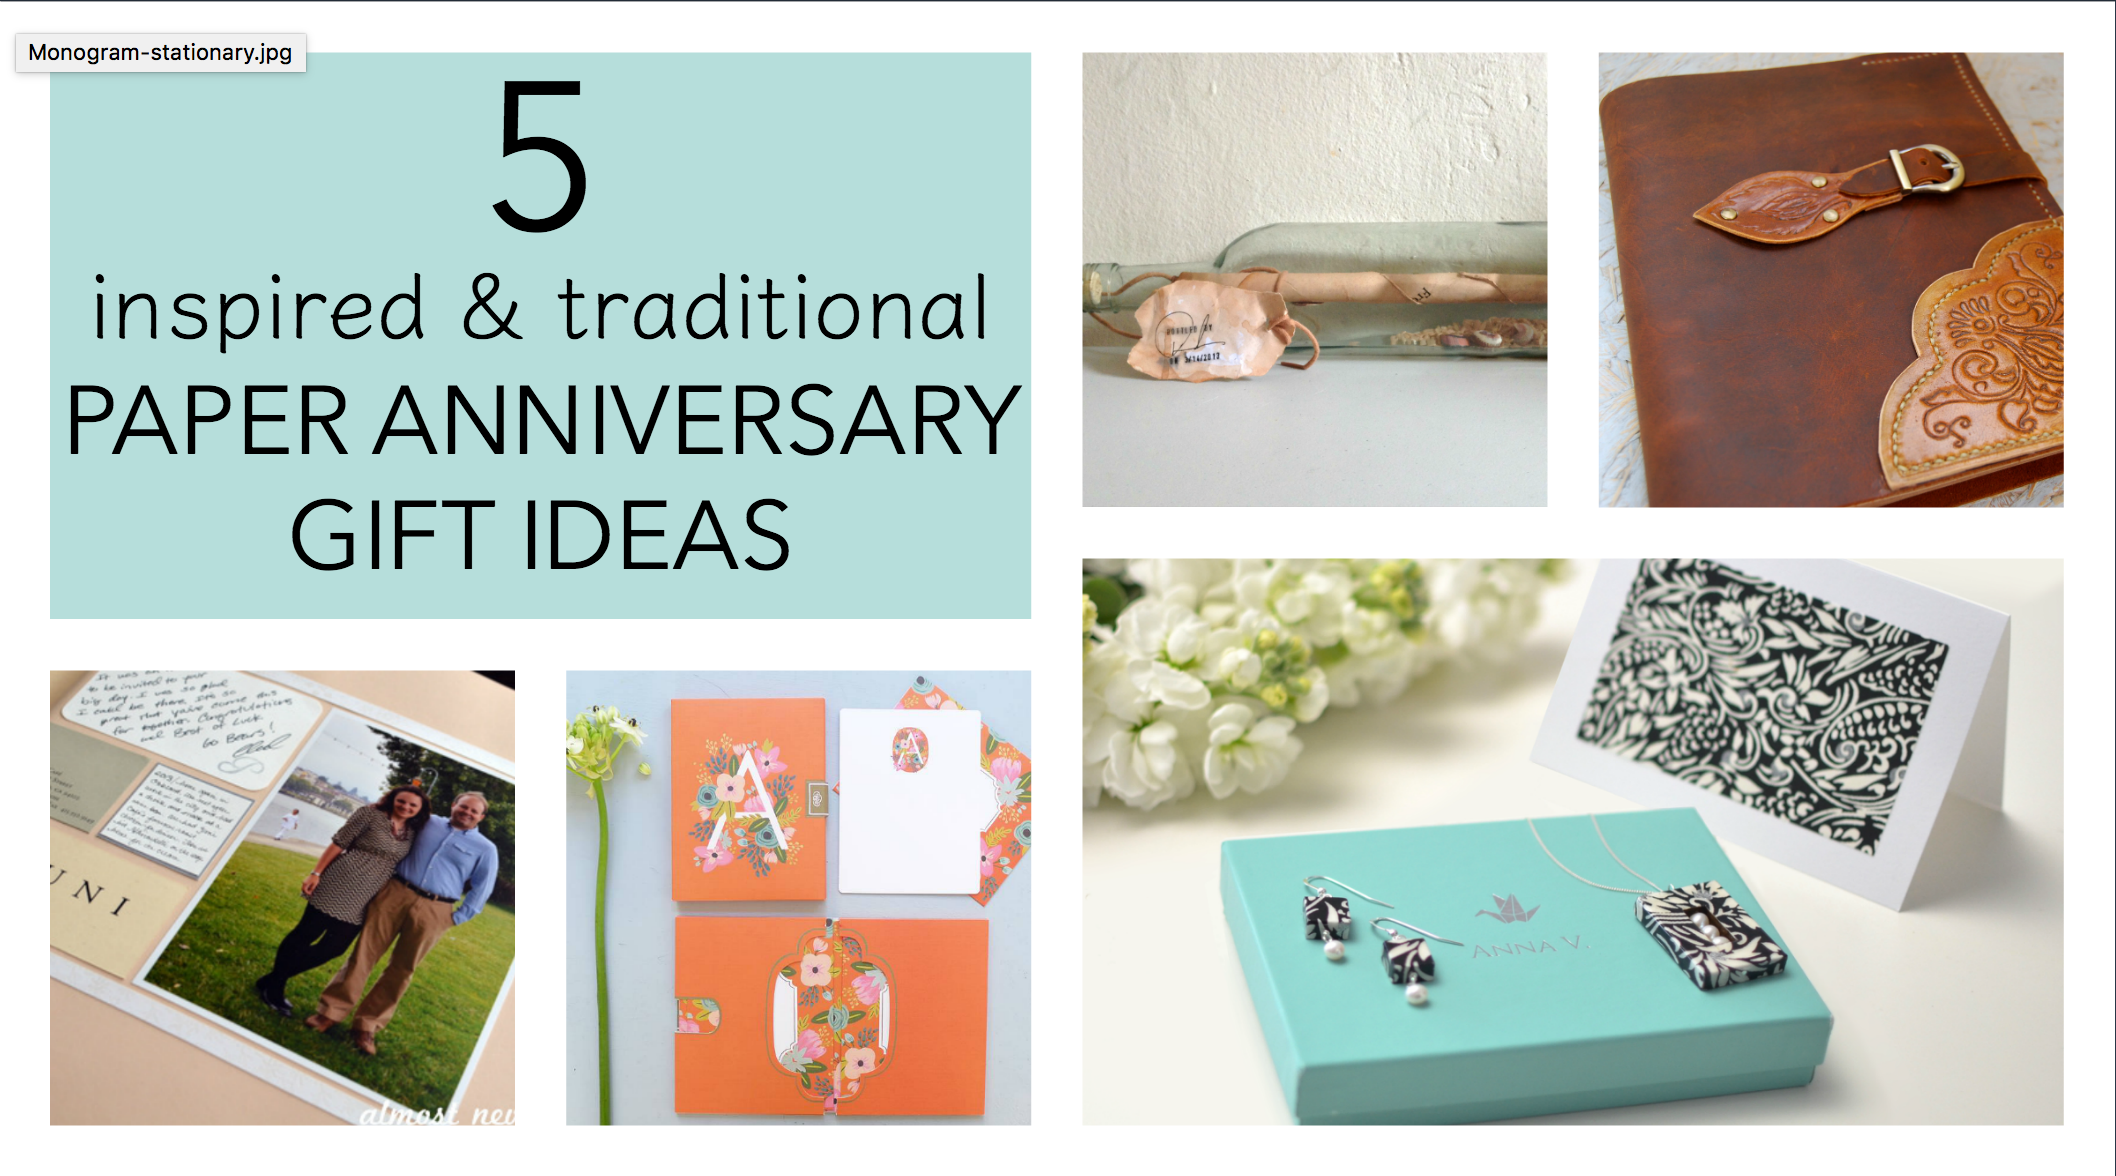 First anniversary gift ideas archives paper anniversary by anna v 5 traditional paper anniversary gift ideas for her negle Gallery